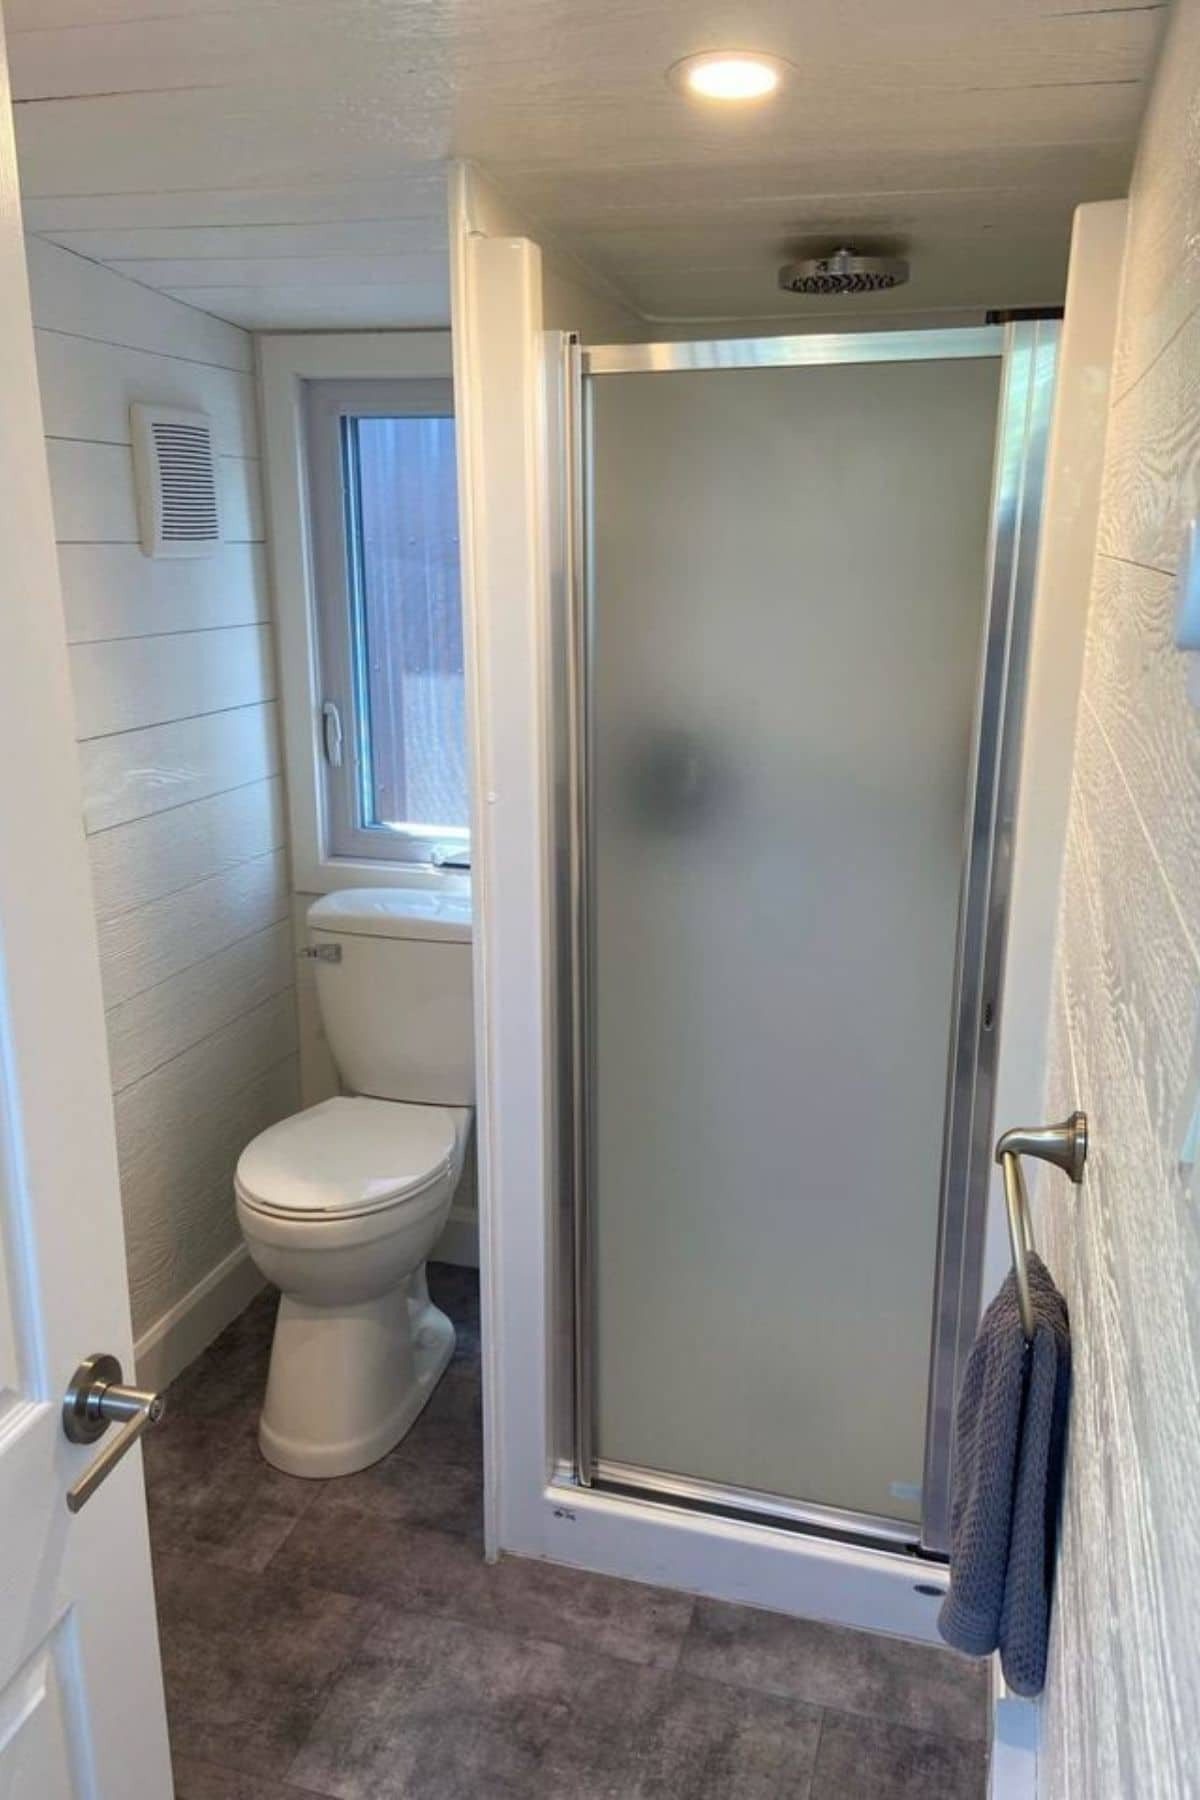 Frosted glass shower stall next to toilet